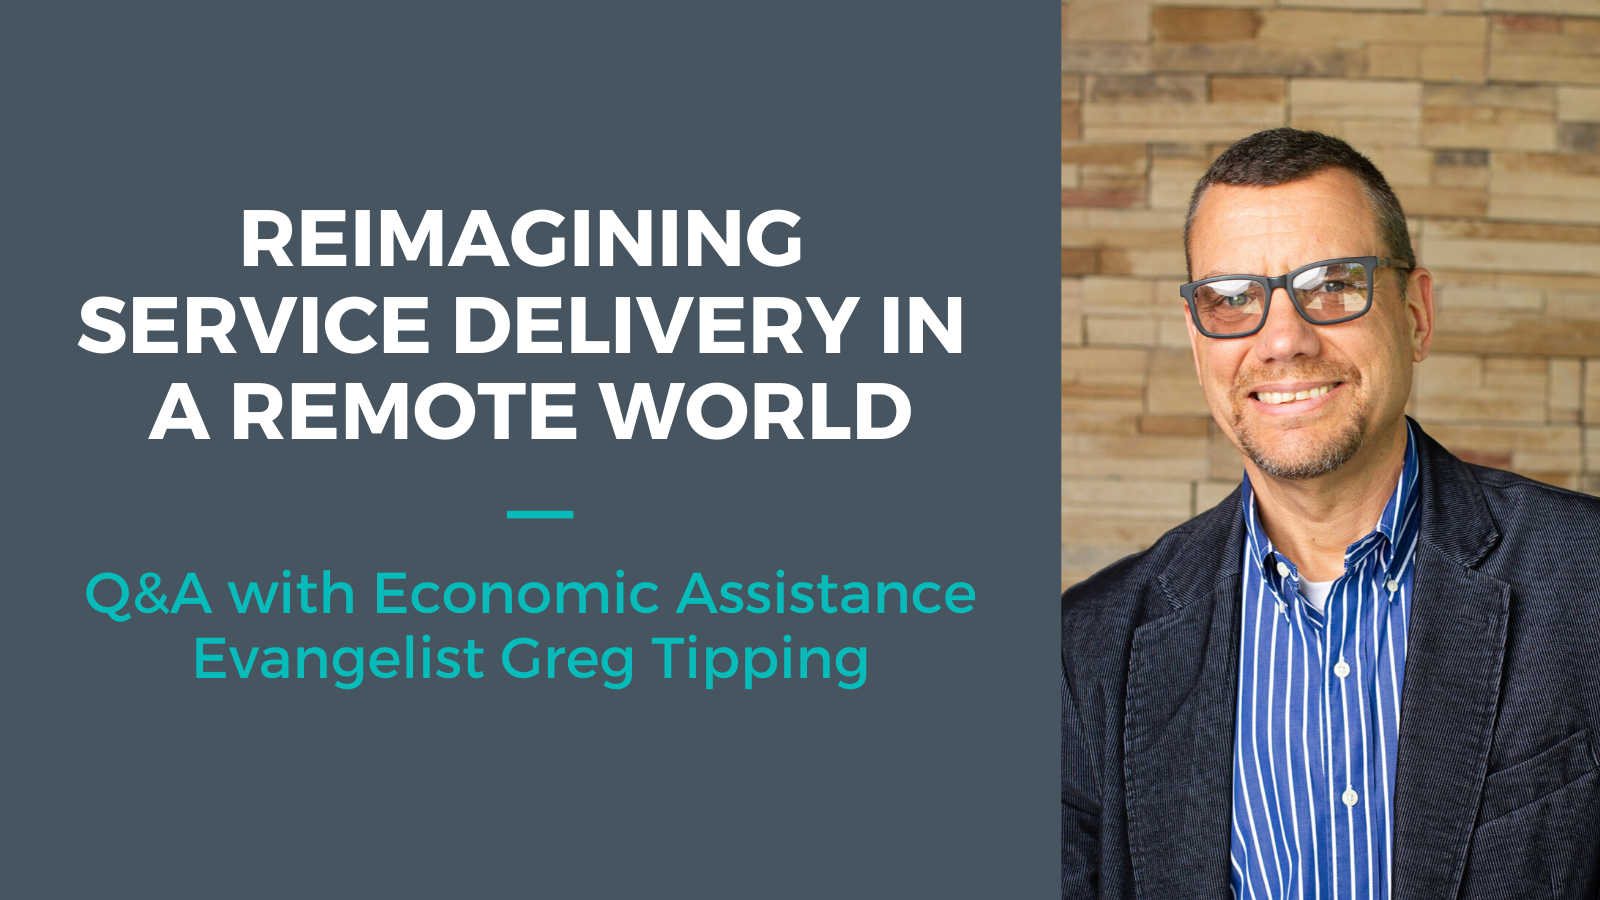 Reimagining Service Delivery in a Remote World (Q&A with Economic Assistance Evangelist Greg Tipping)